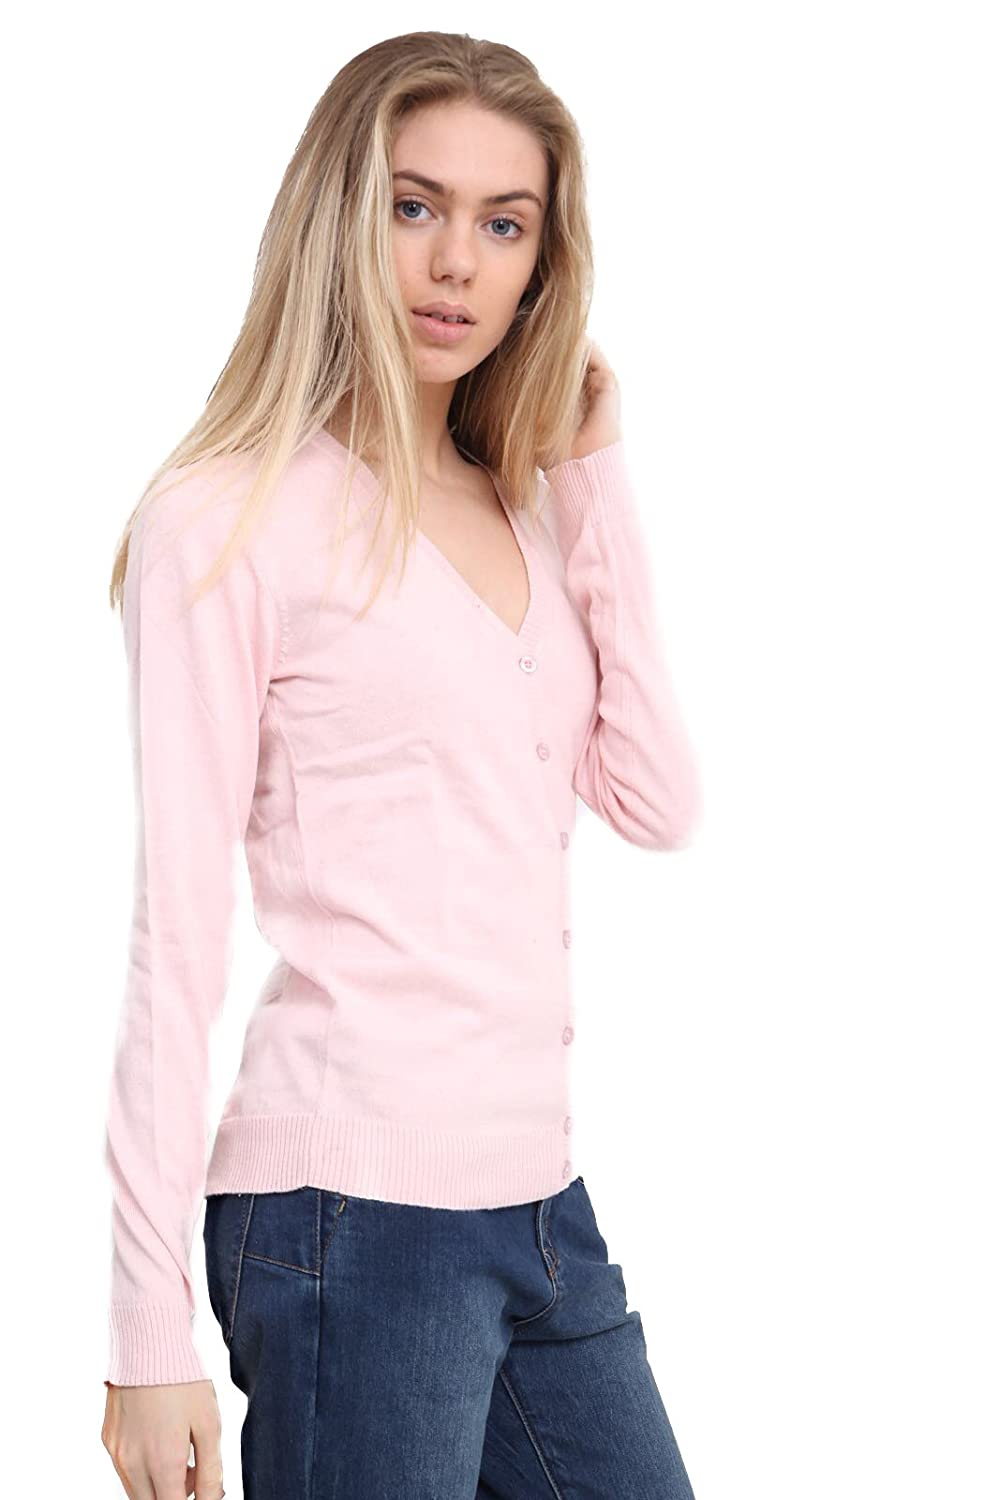 Malwee Ladies Fine Knit V Neck Woman Button Cardigan Long Sleeve Tops